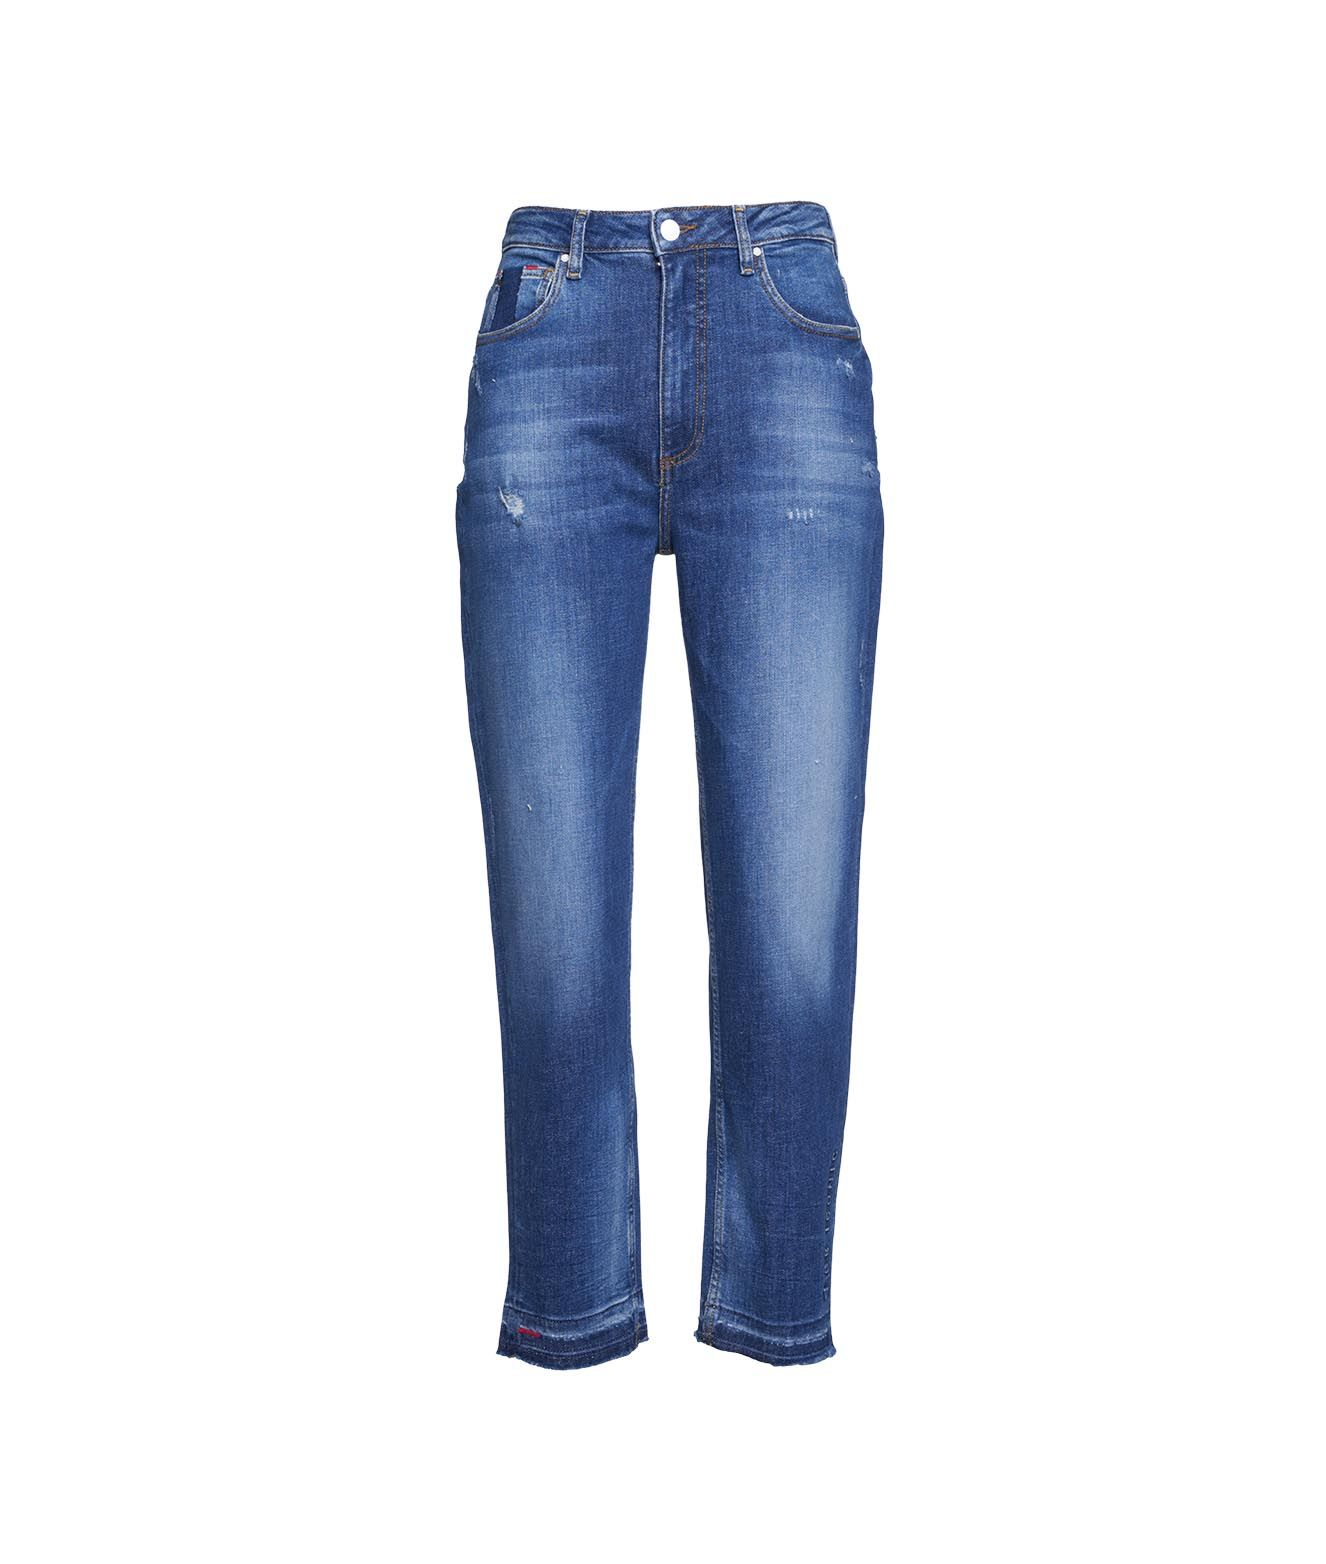 Guess Jeans GUESS WOMEN'S W1RA21D46A411GLRS BLUE OTHER MATERIALS JEANS